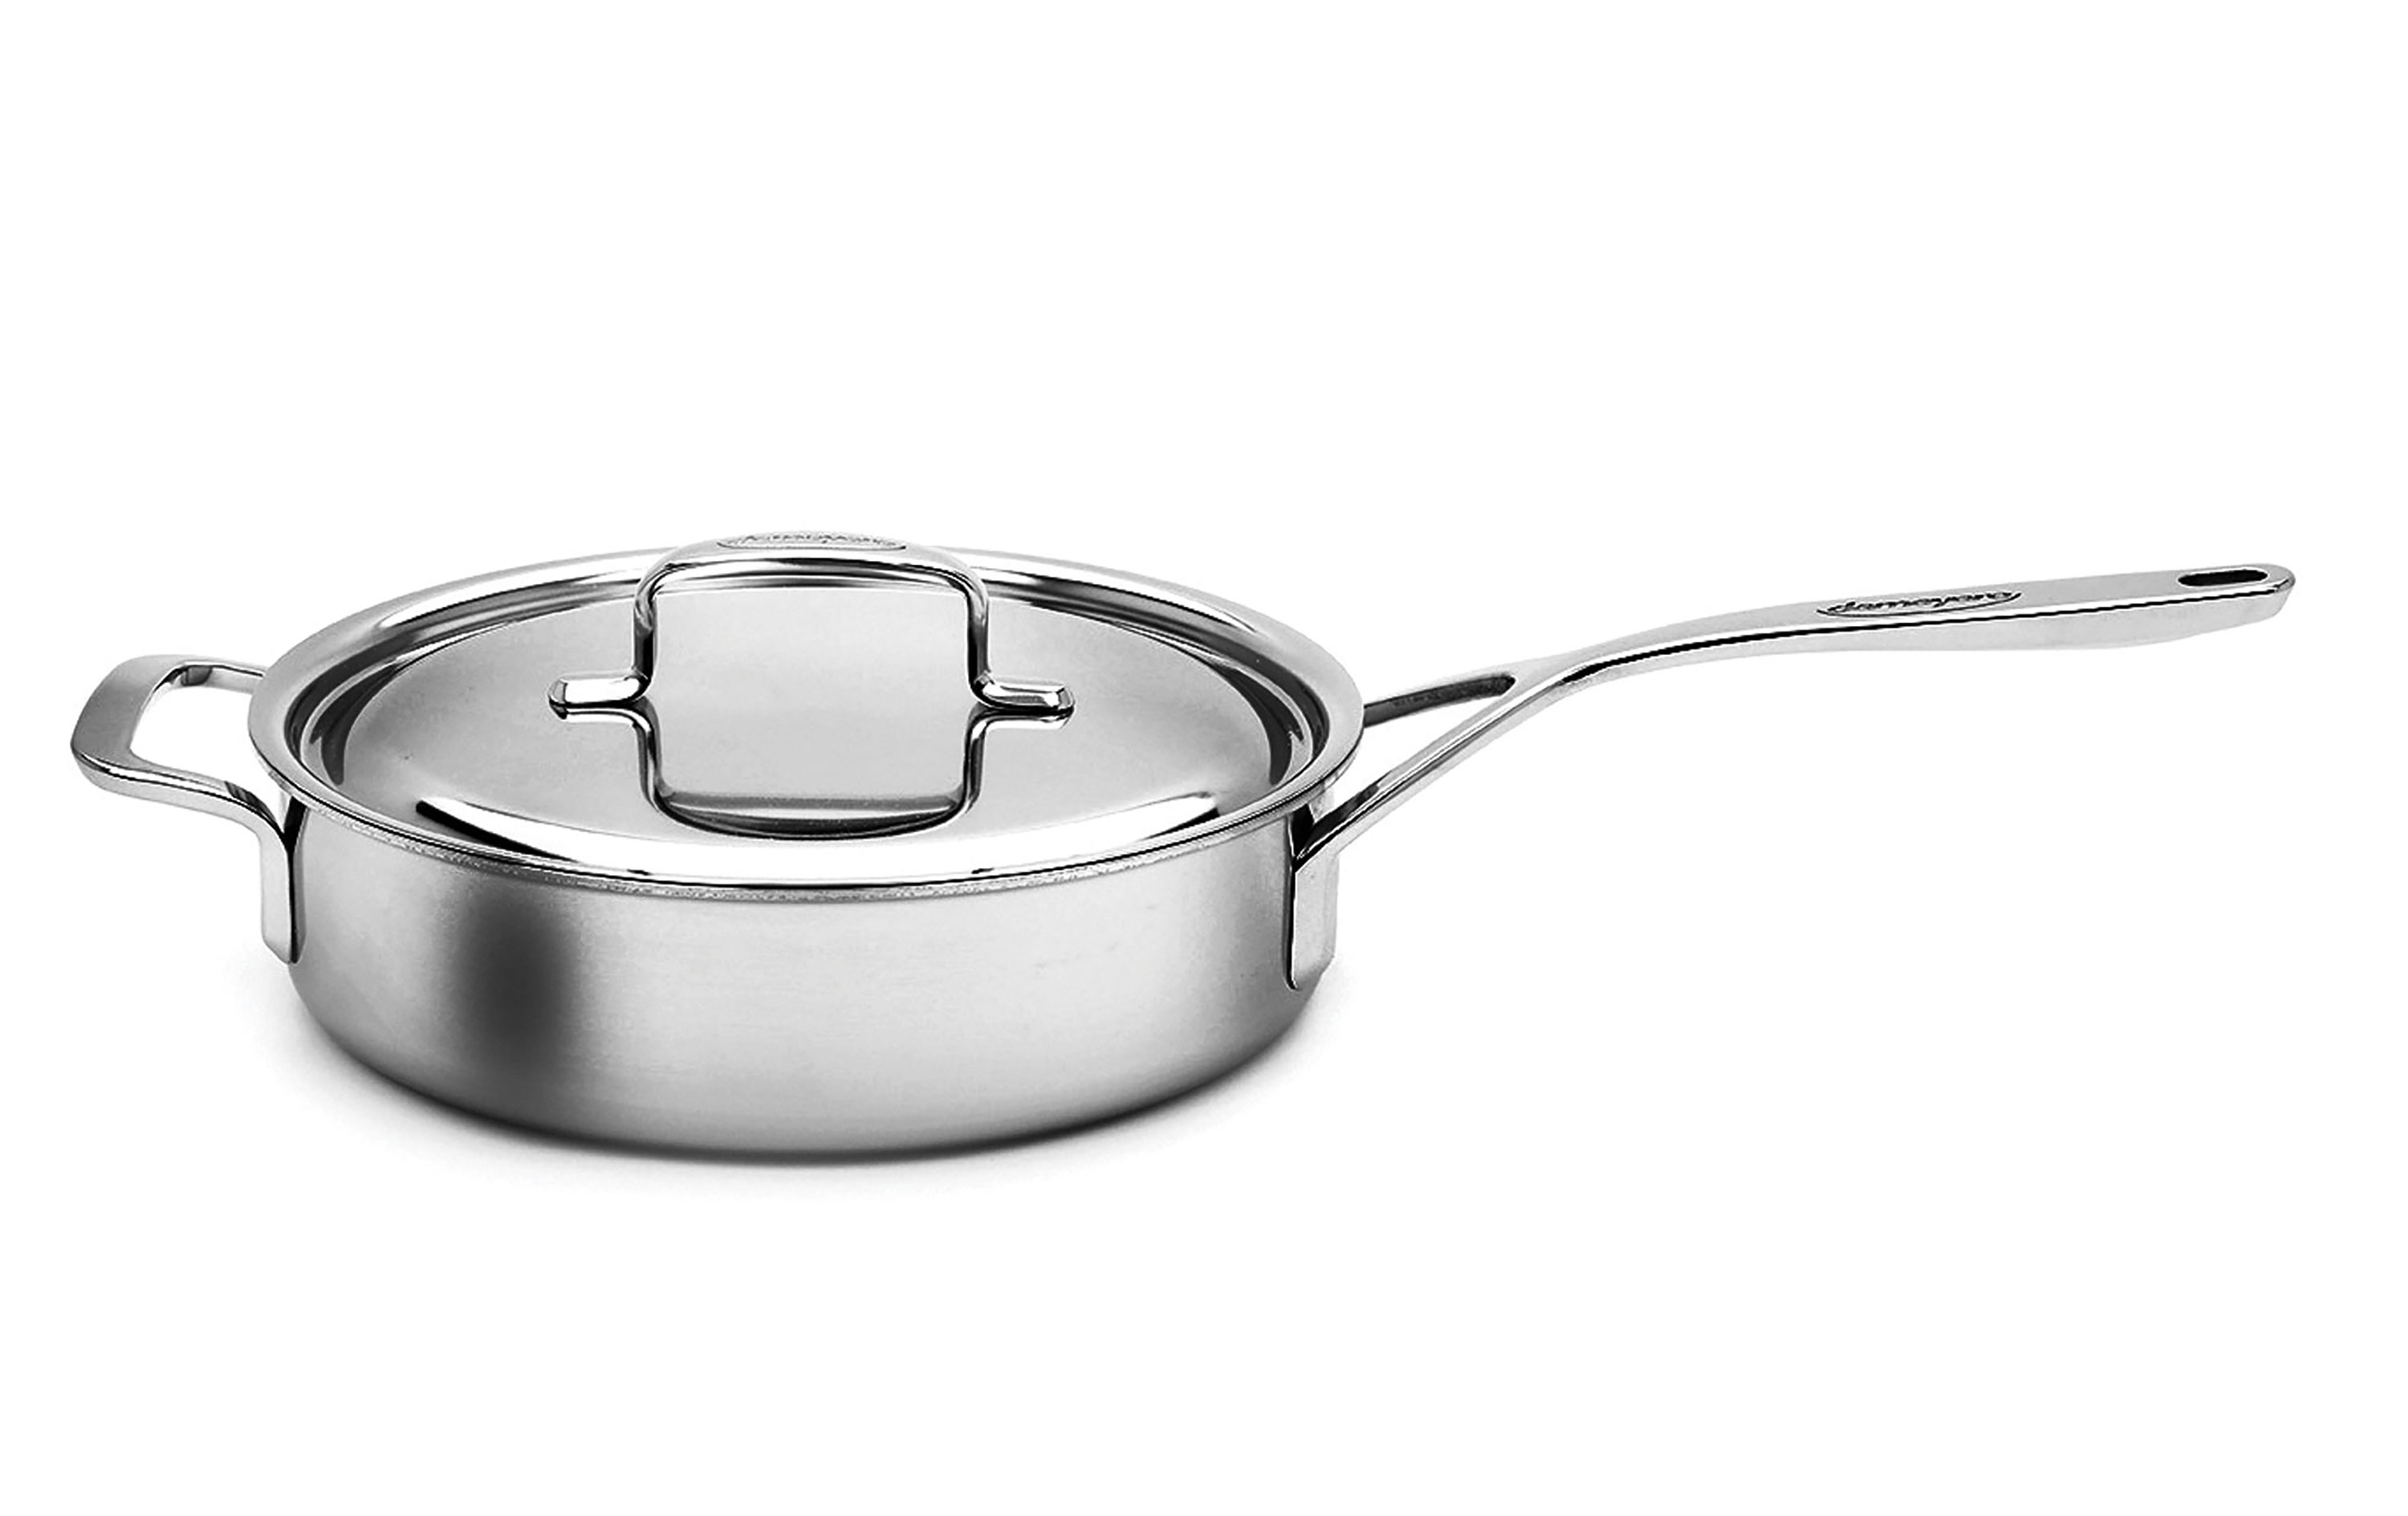 Demeyere 5 Plus Stainless Steel Saute Pan 6 5 Quart